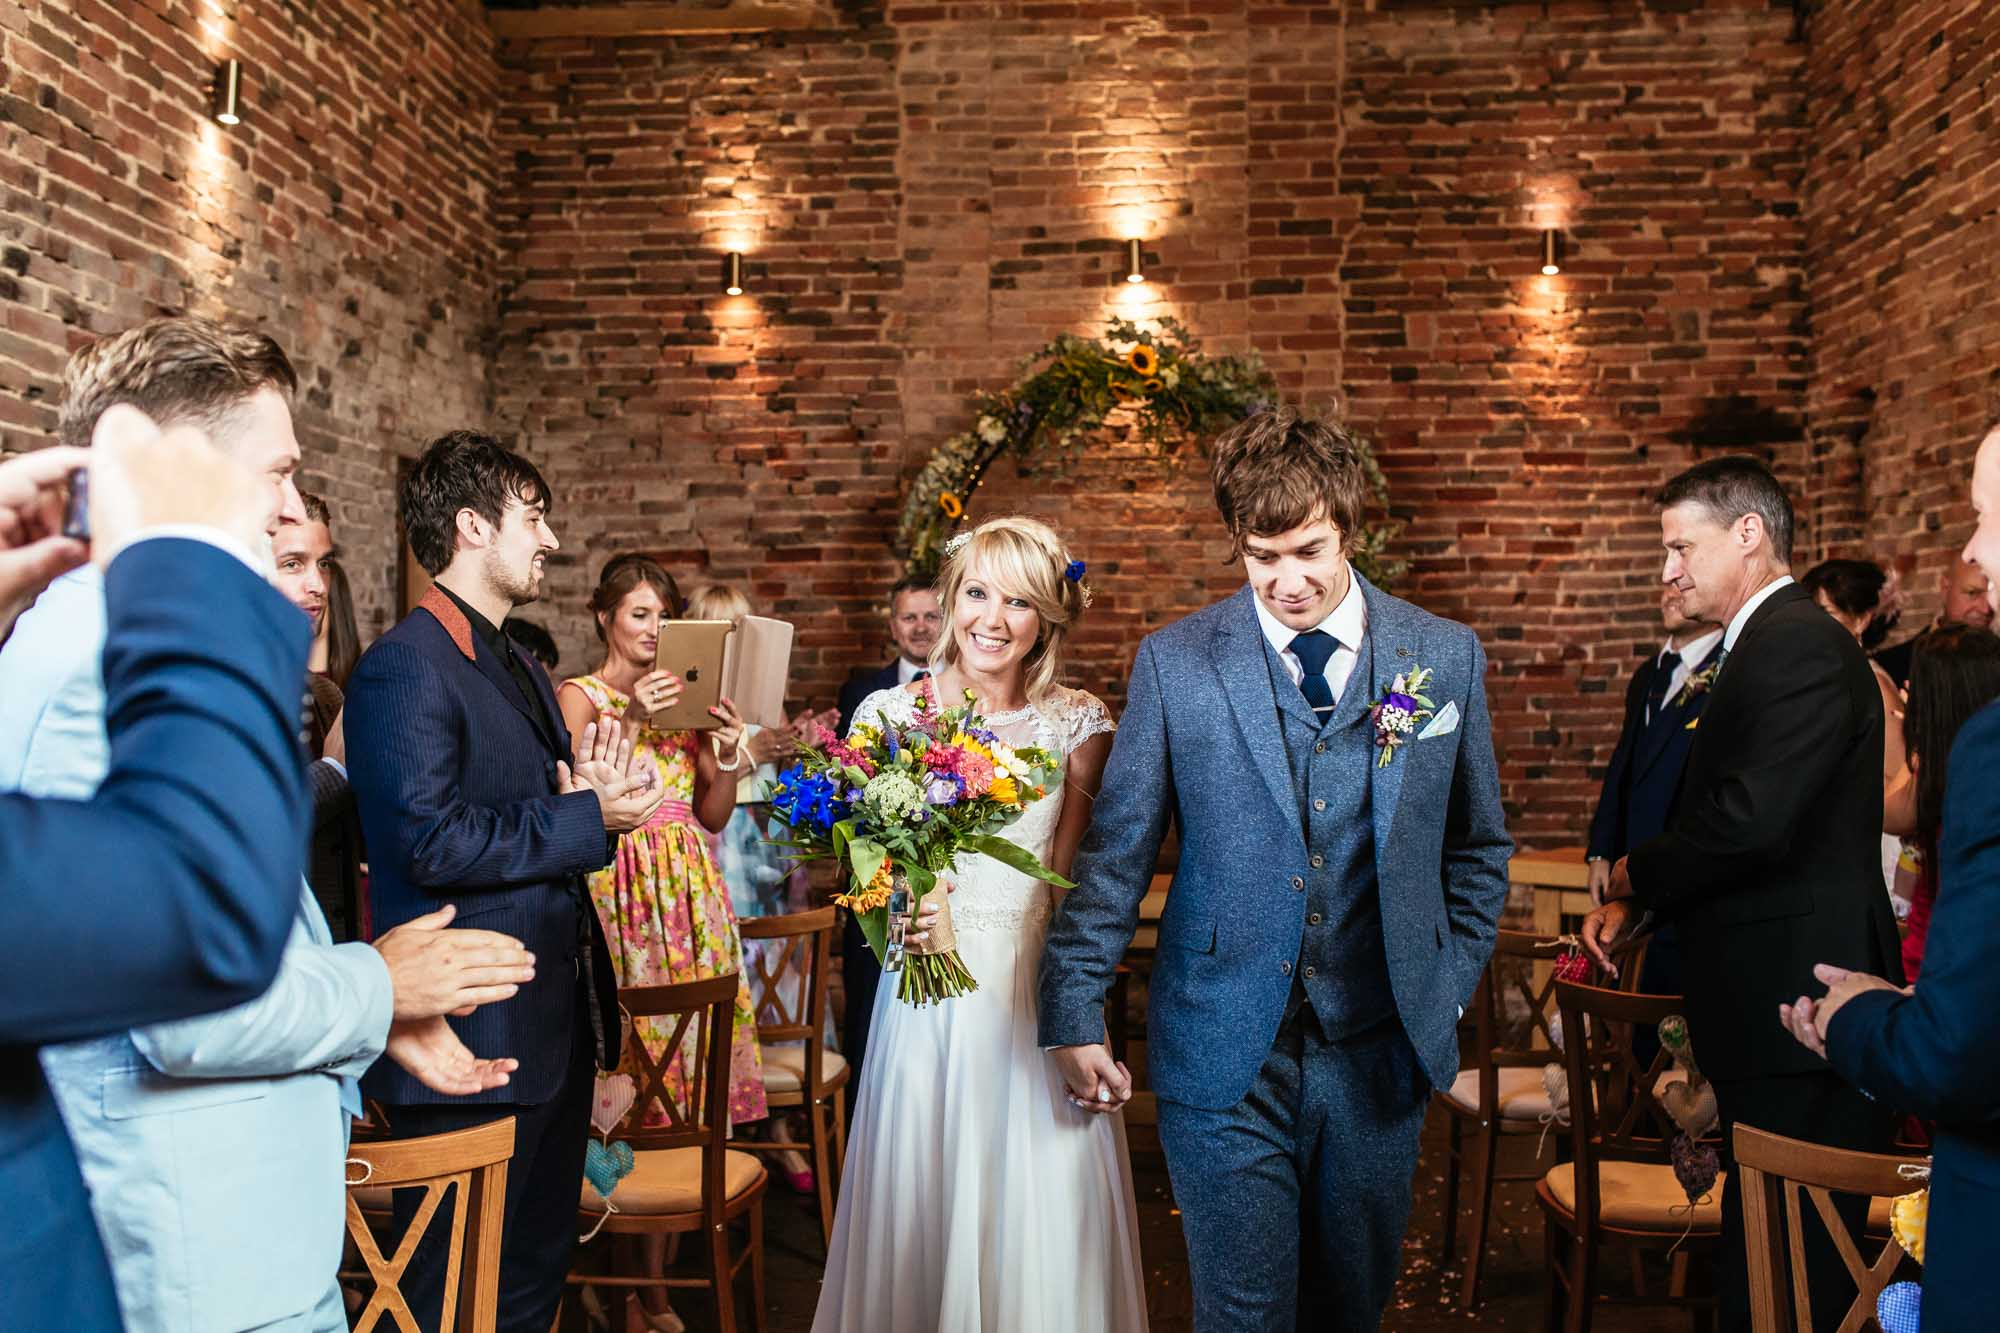 Colourful Vintage Barn Wedding Ceremony